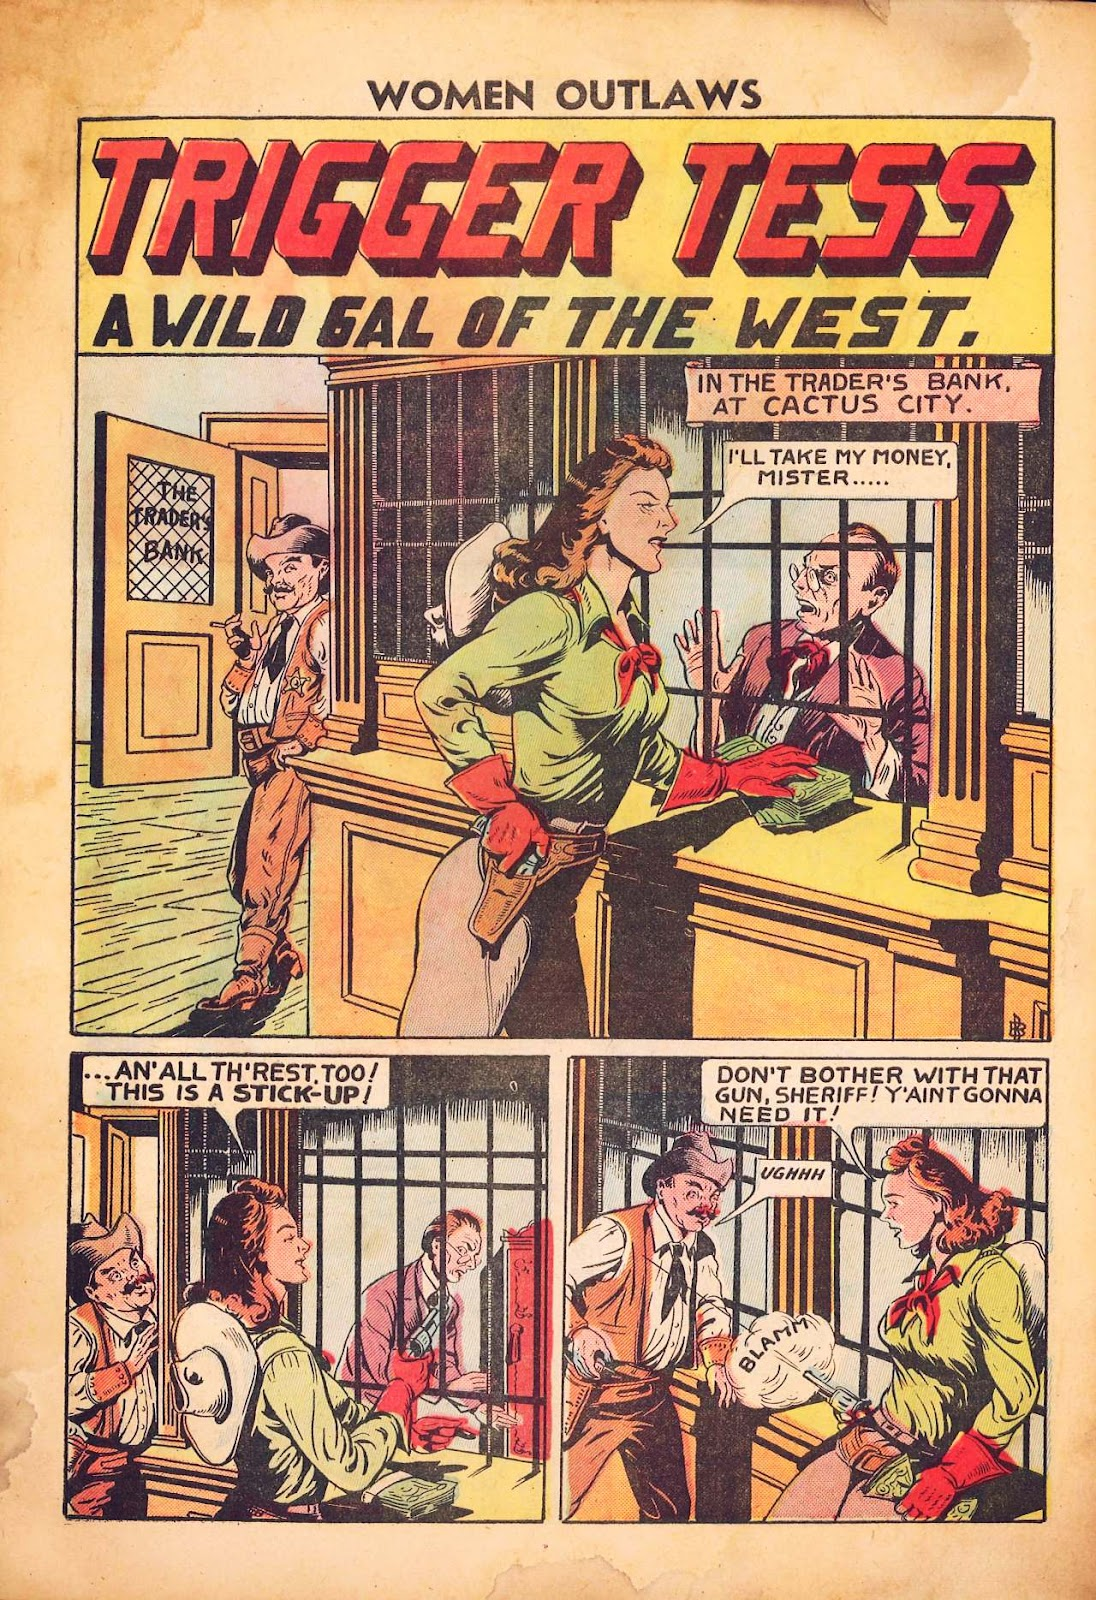 Read online Women Outlaws comic -  Issue #2 - 32